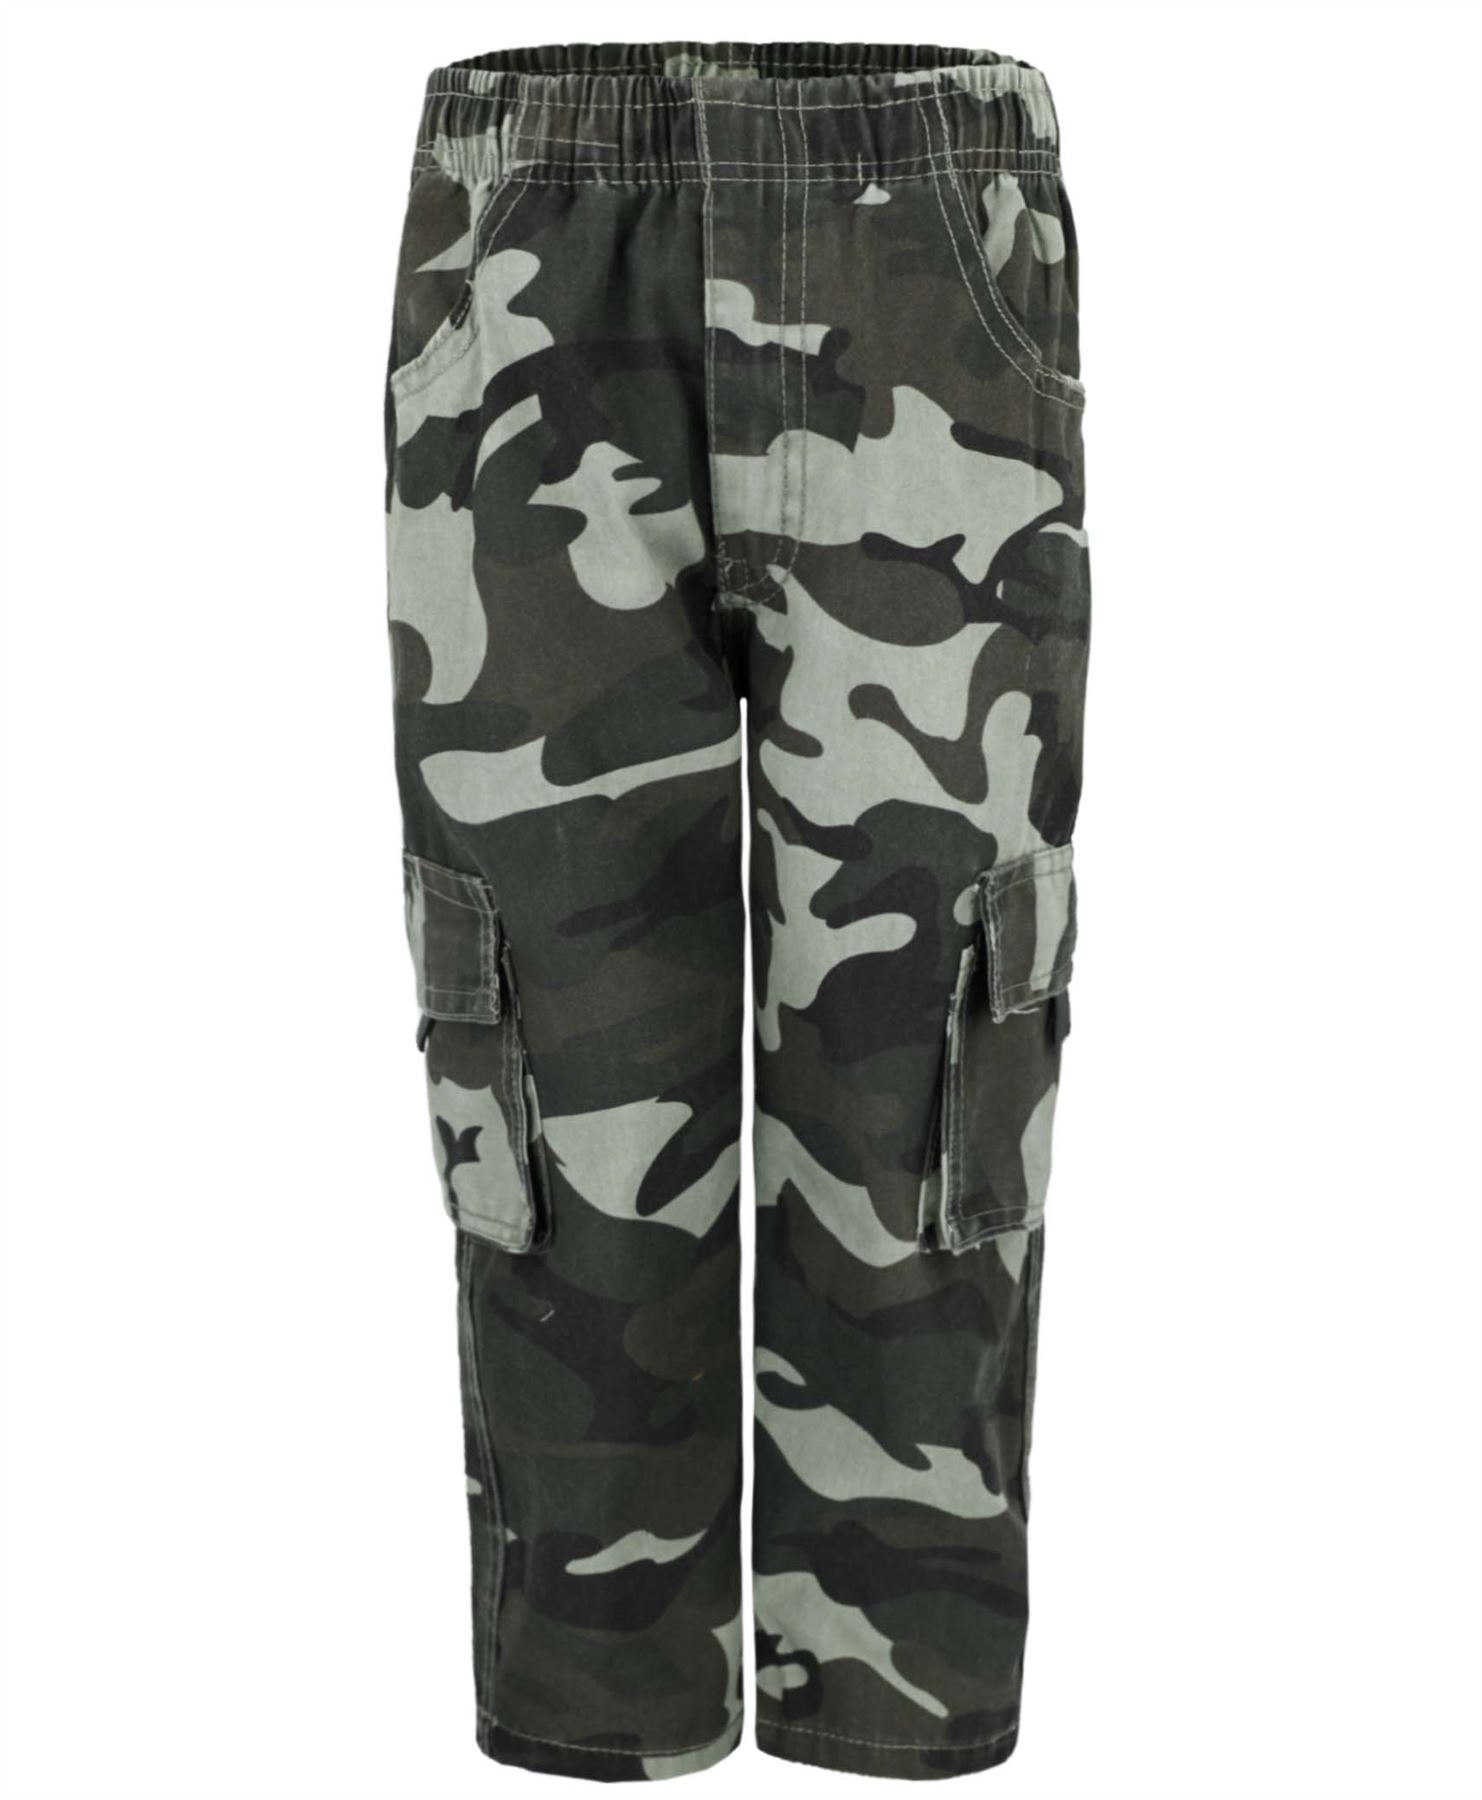 Youth Camo. Showing 40 of results that match your query. Search Product Result. Military Uniform Supply KIDS Camouflage Ghillie Suit - WOODLAND CAMO - Small/Medium. Product Image. Price $ Clothing, Electronics and Health & Beauty. Marketplace items.